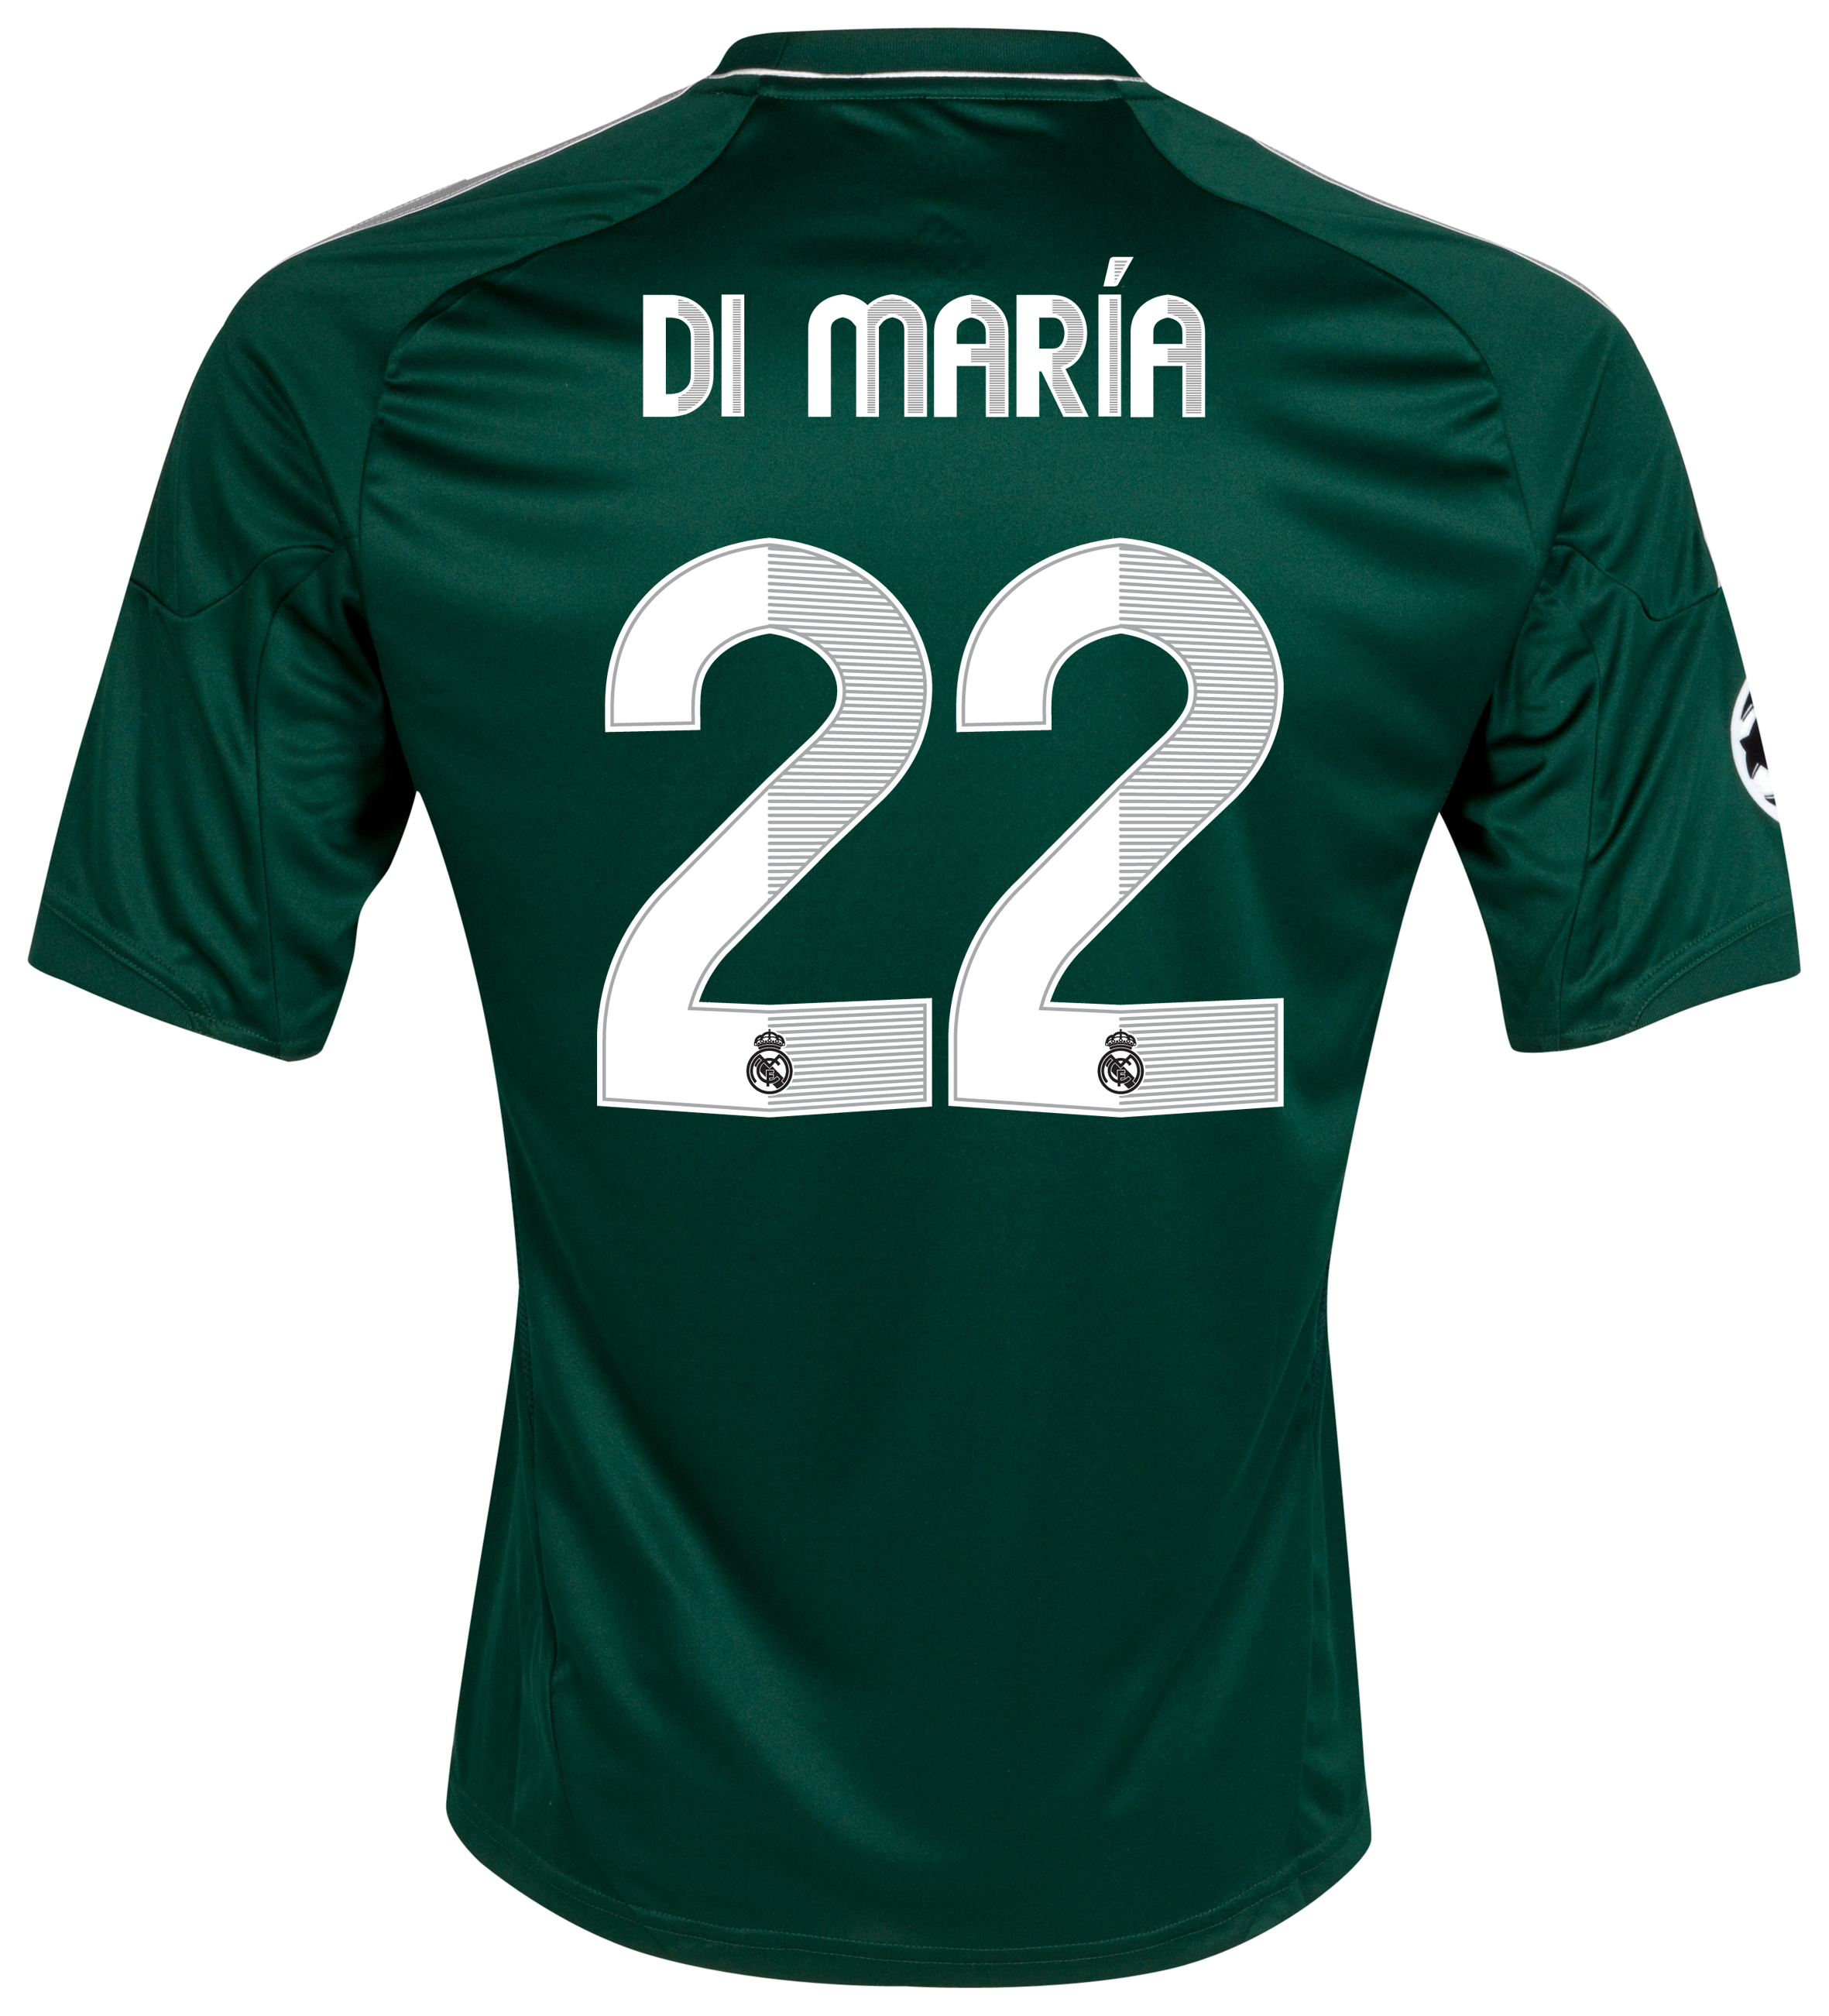 Real Madrid UEFA Champions League Third Shirt 2012/13 with Di Mara 22 printing